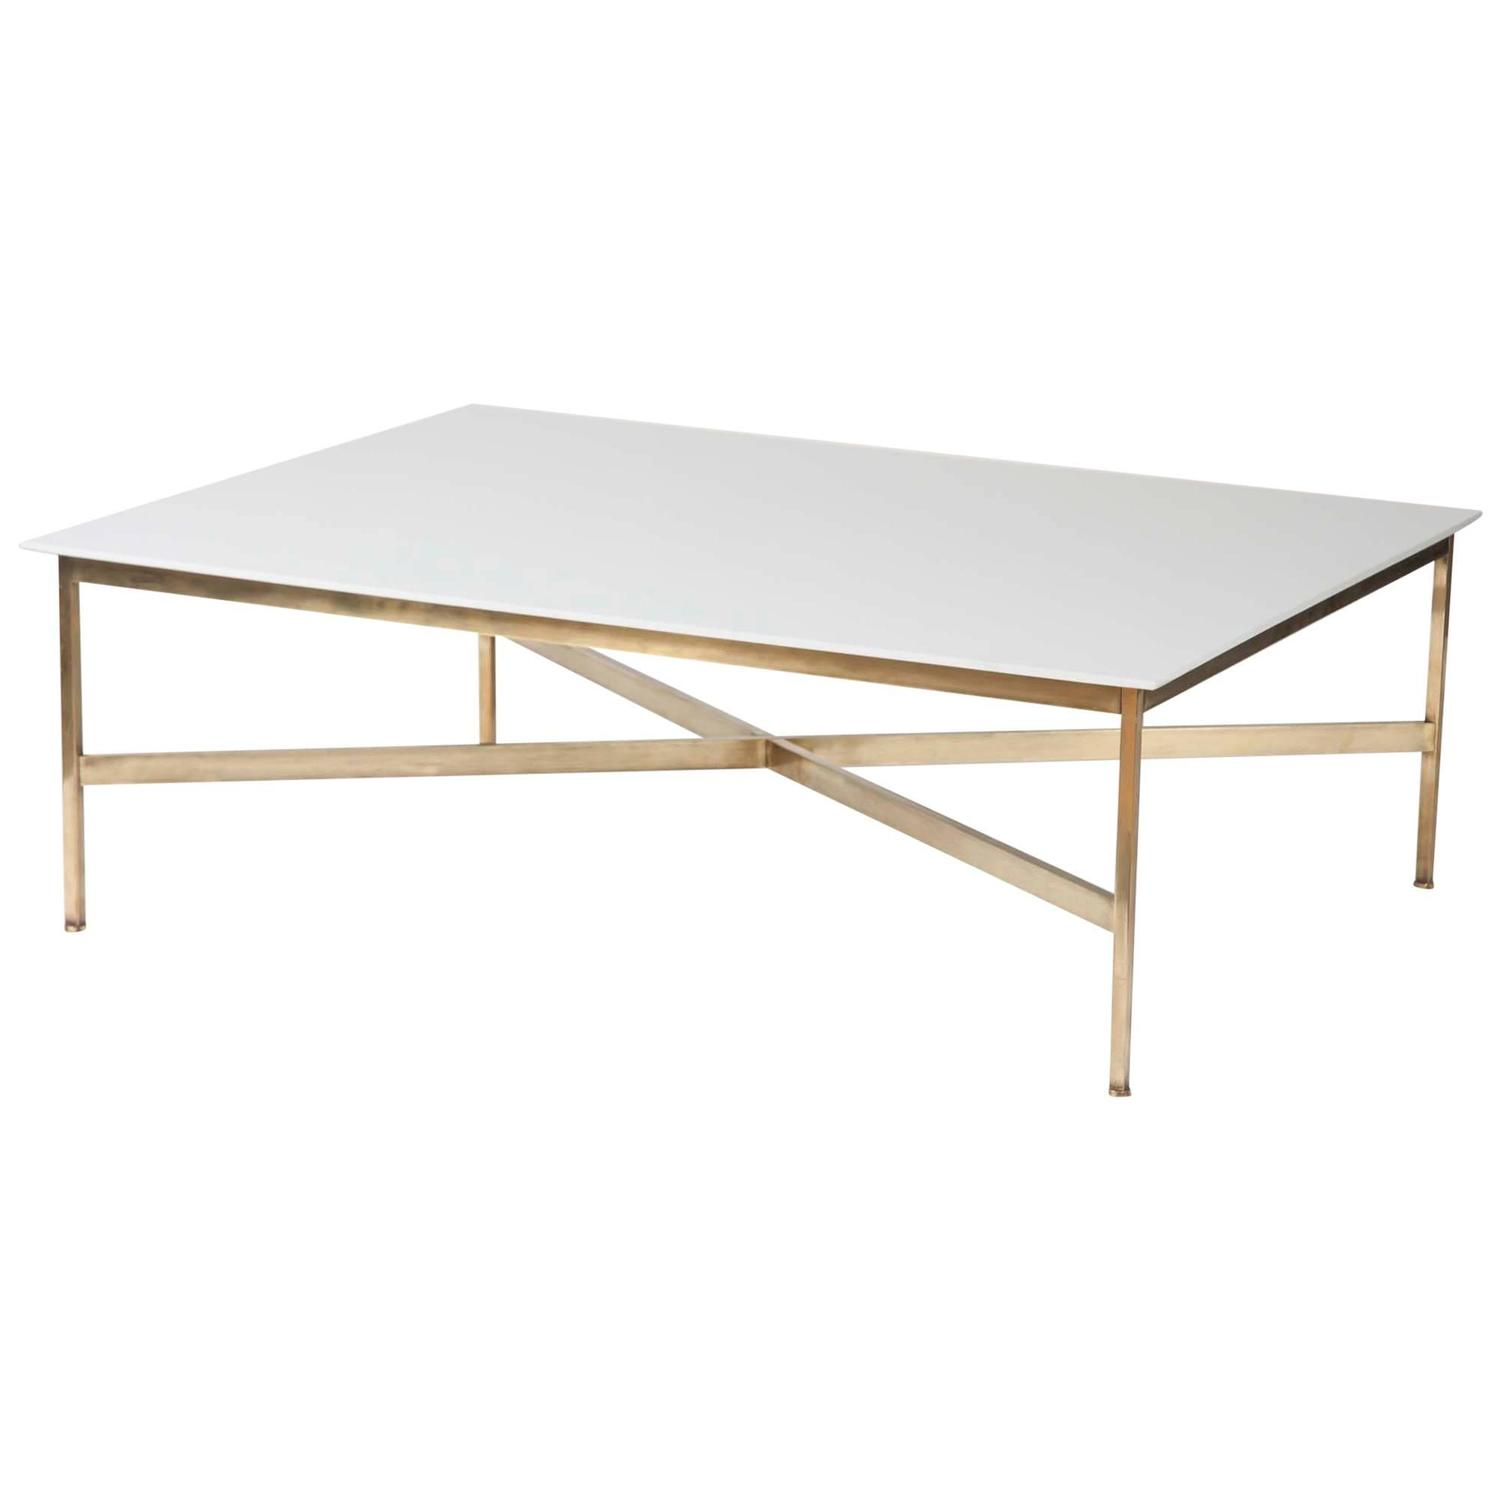 1950s Marble and Brass Coffee Table by Paul McCobb For Sale at 1stdibs